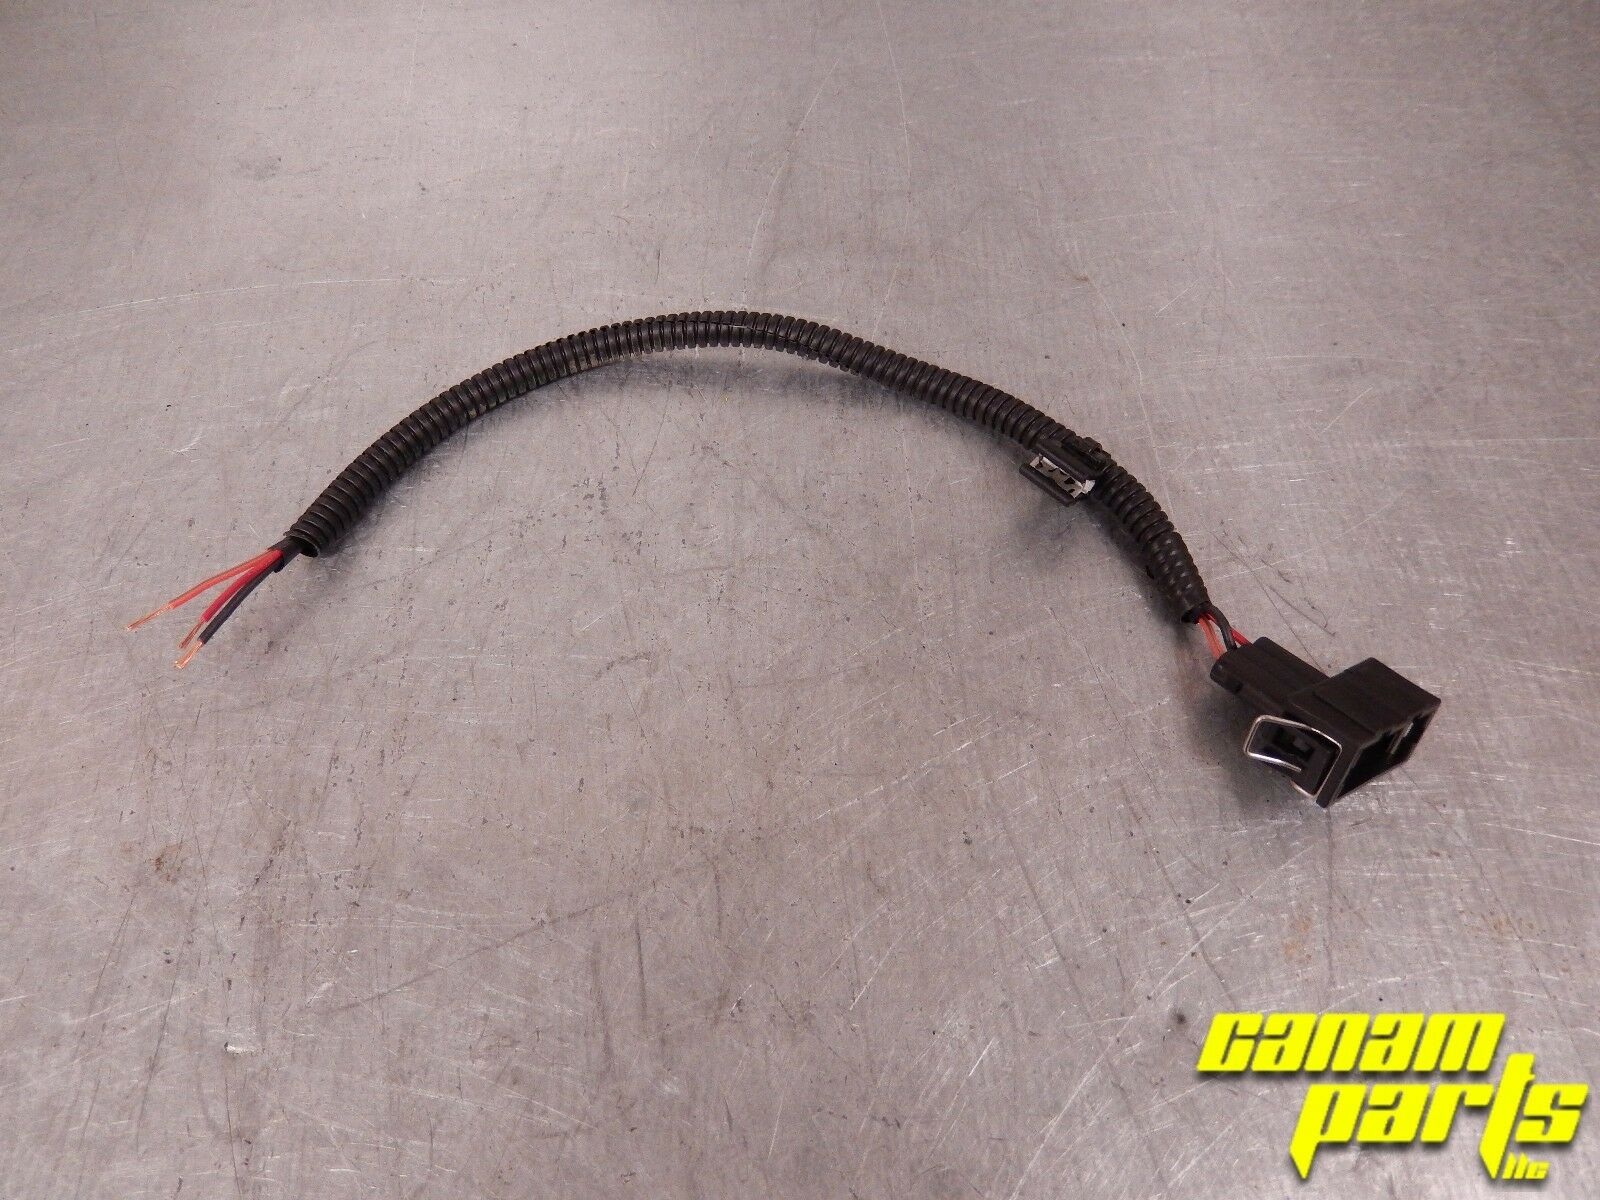 NEW OEM Tail Light Wiring Harness Plug Pigtail G2/SXS – Can-am Parts GuyCan-am Parts Guy